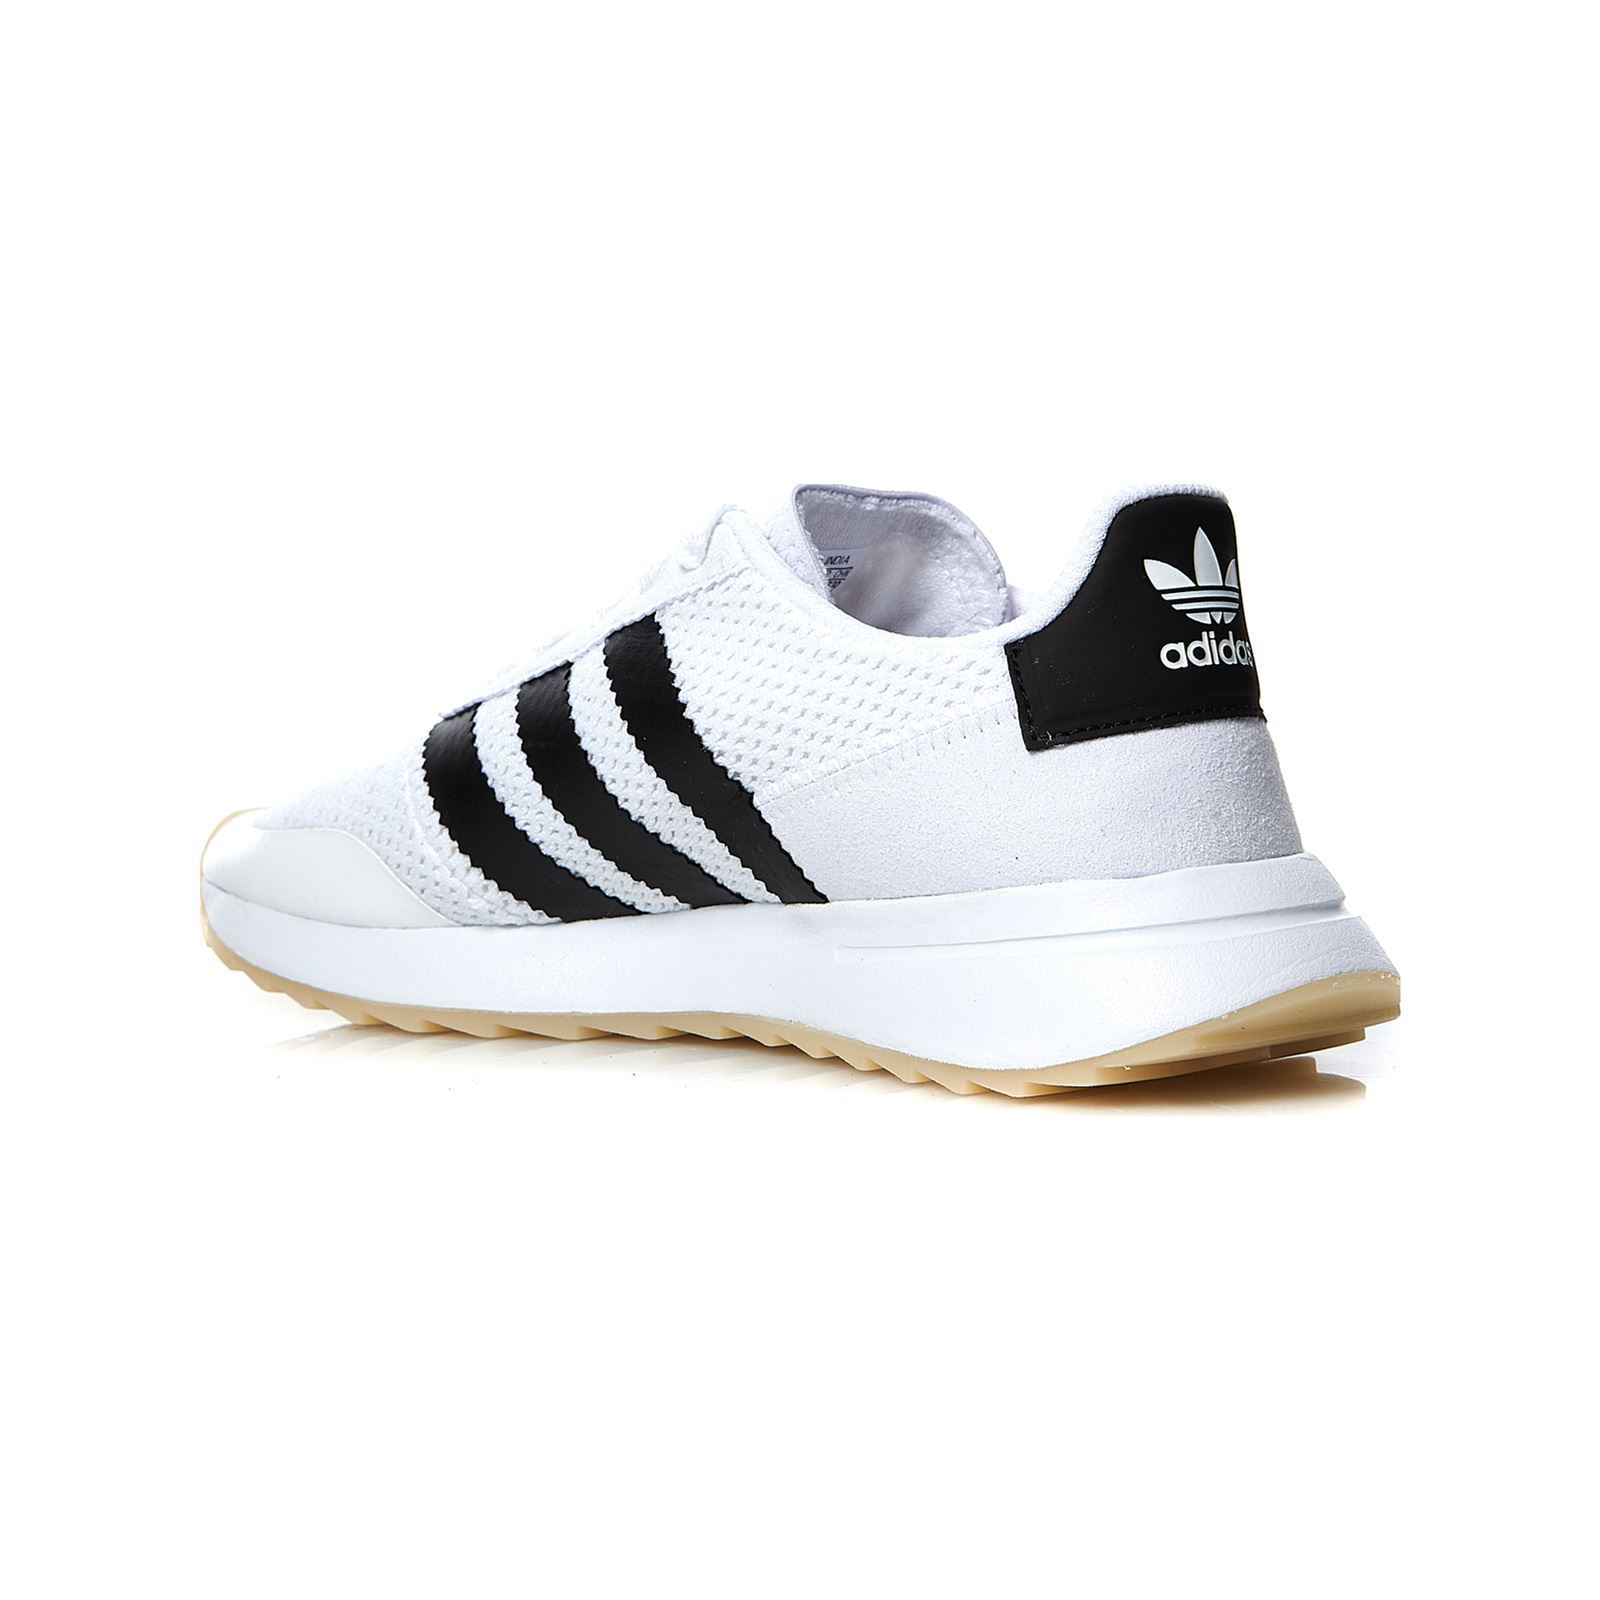 Flb Adidas Baskets W BlancBrandalley Originals qUpVzjGSLM